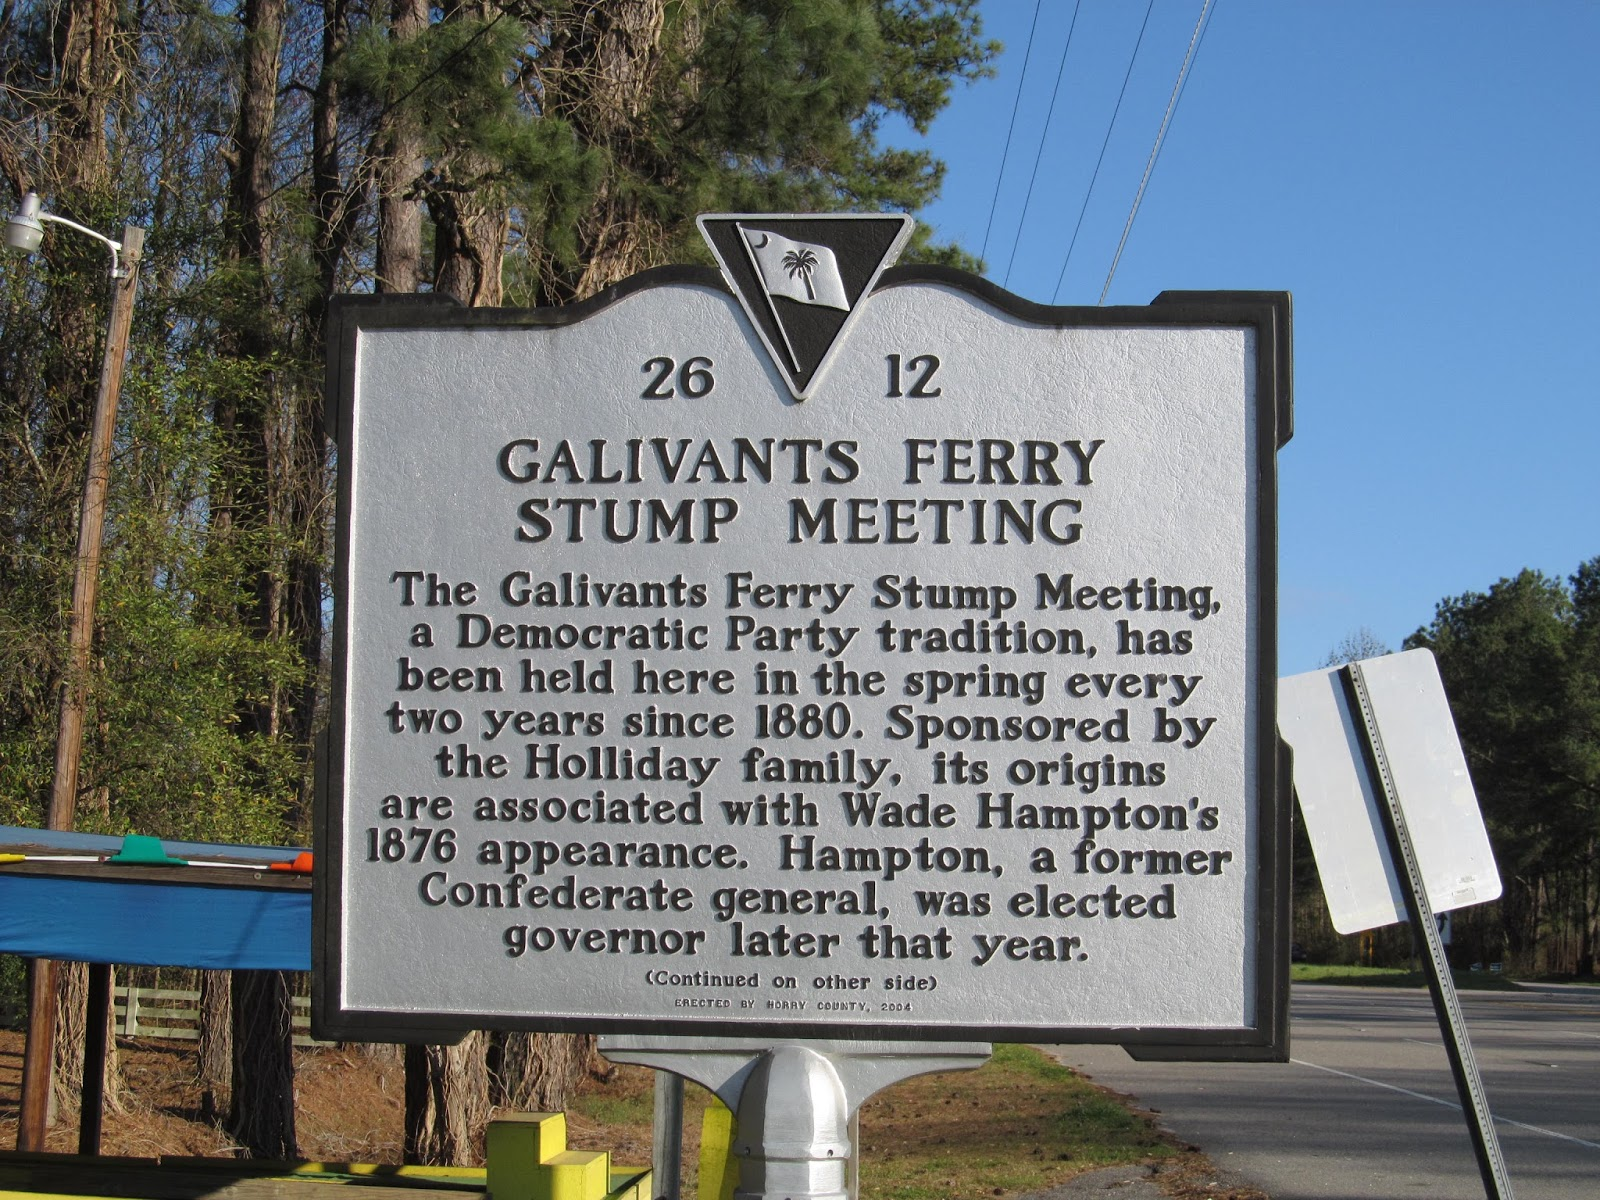 galivants ferry divorced singles personals Galivants ferry is one of several historical districts registered in horry county in 2001, this district was placed in the national register of historic places two historic markers summarizing the community's transportation, political and architectural significance, dating from 1792, have been placed to commemorate the galivants ferry and the.